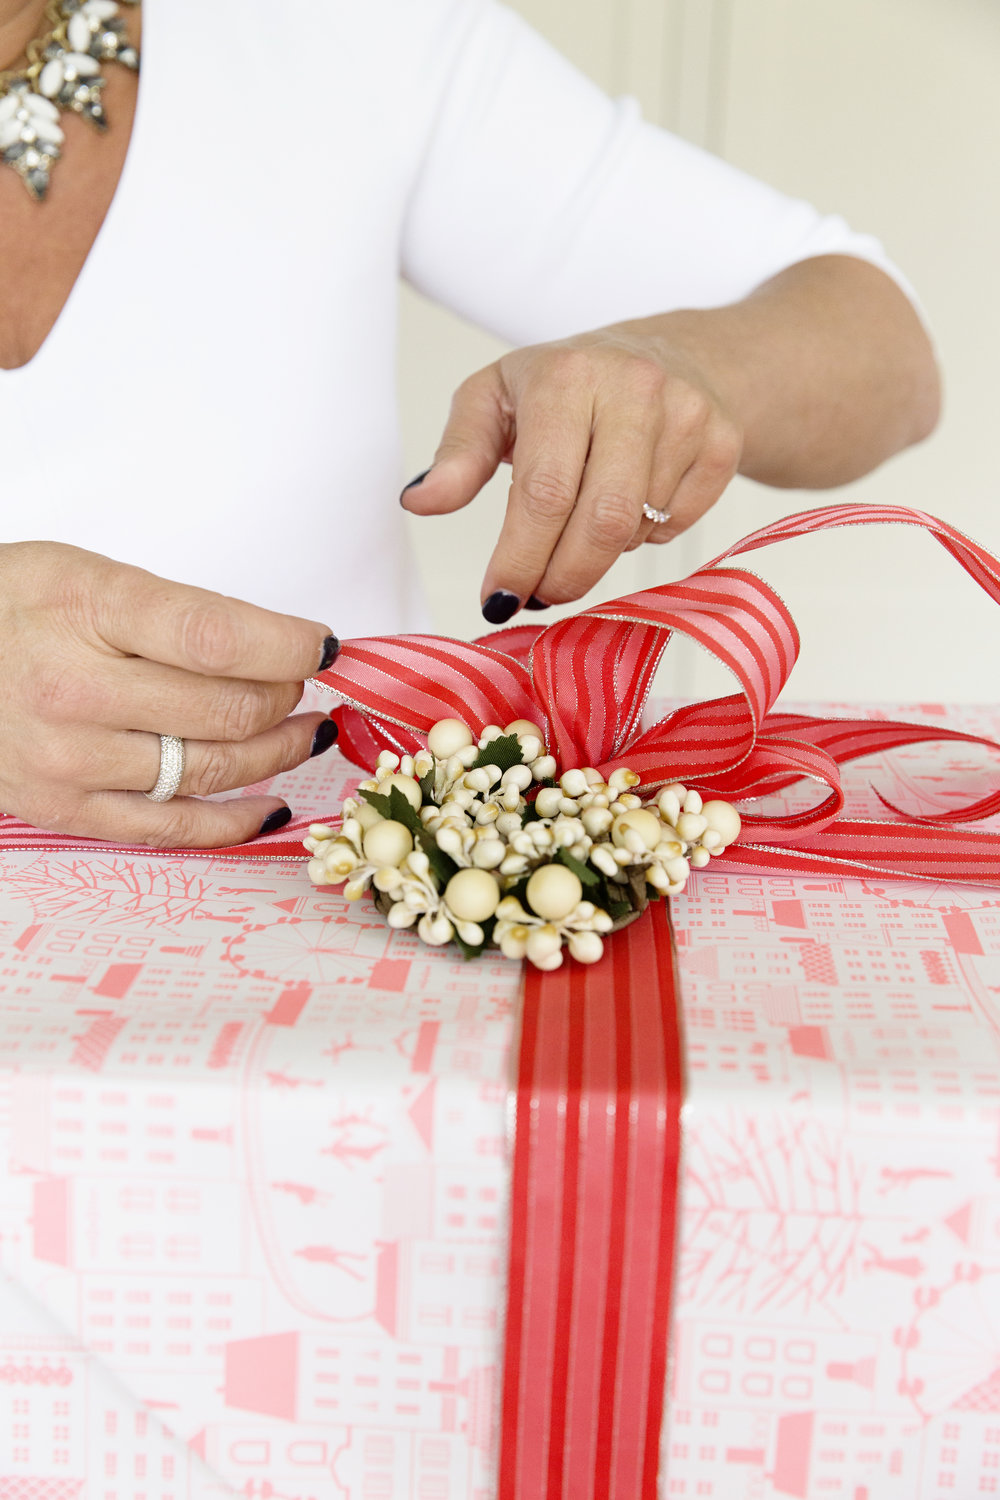 Gift Wrapping 031.JPG